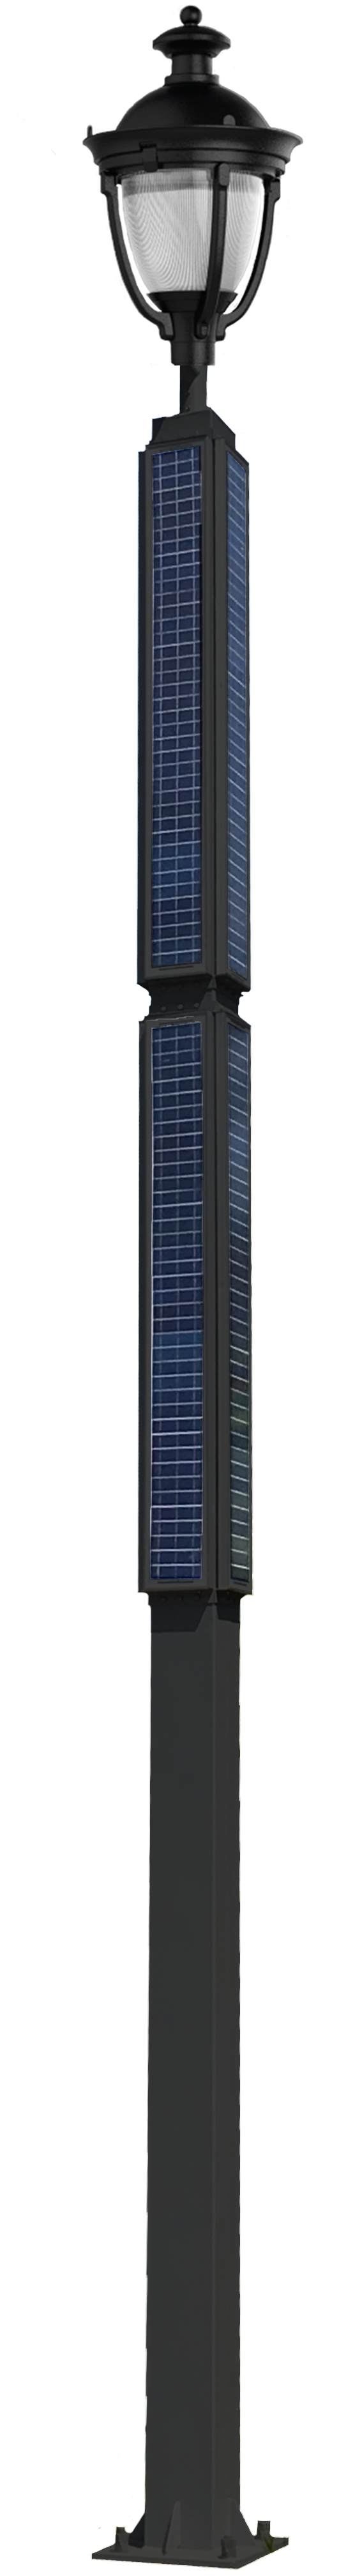 Supera Solar street lighting system